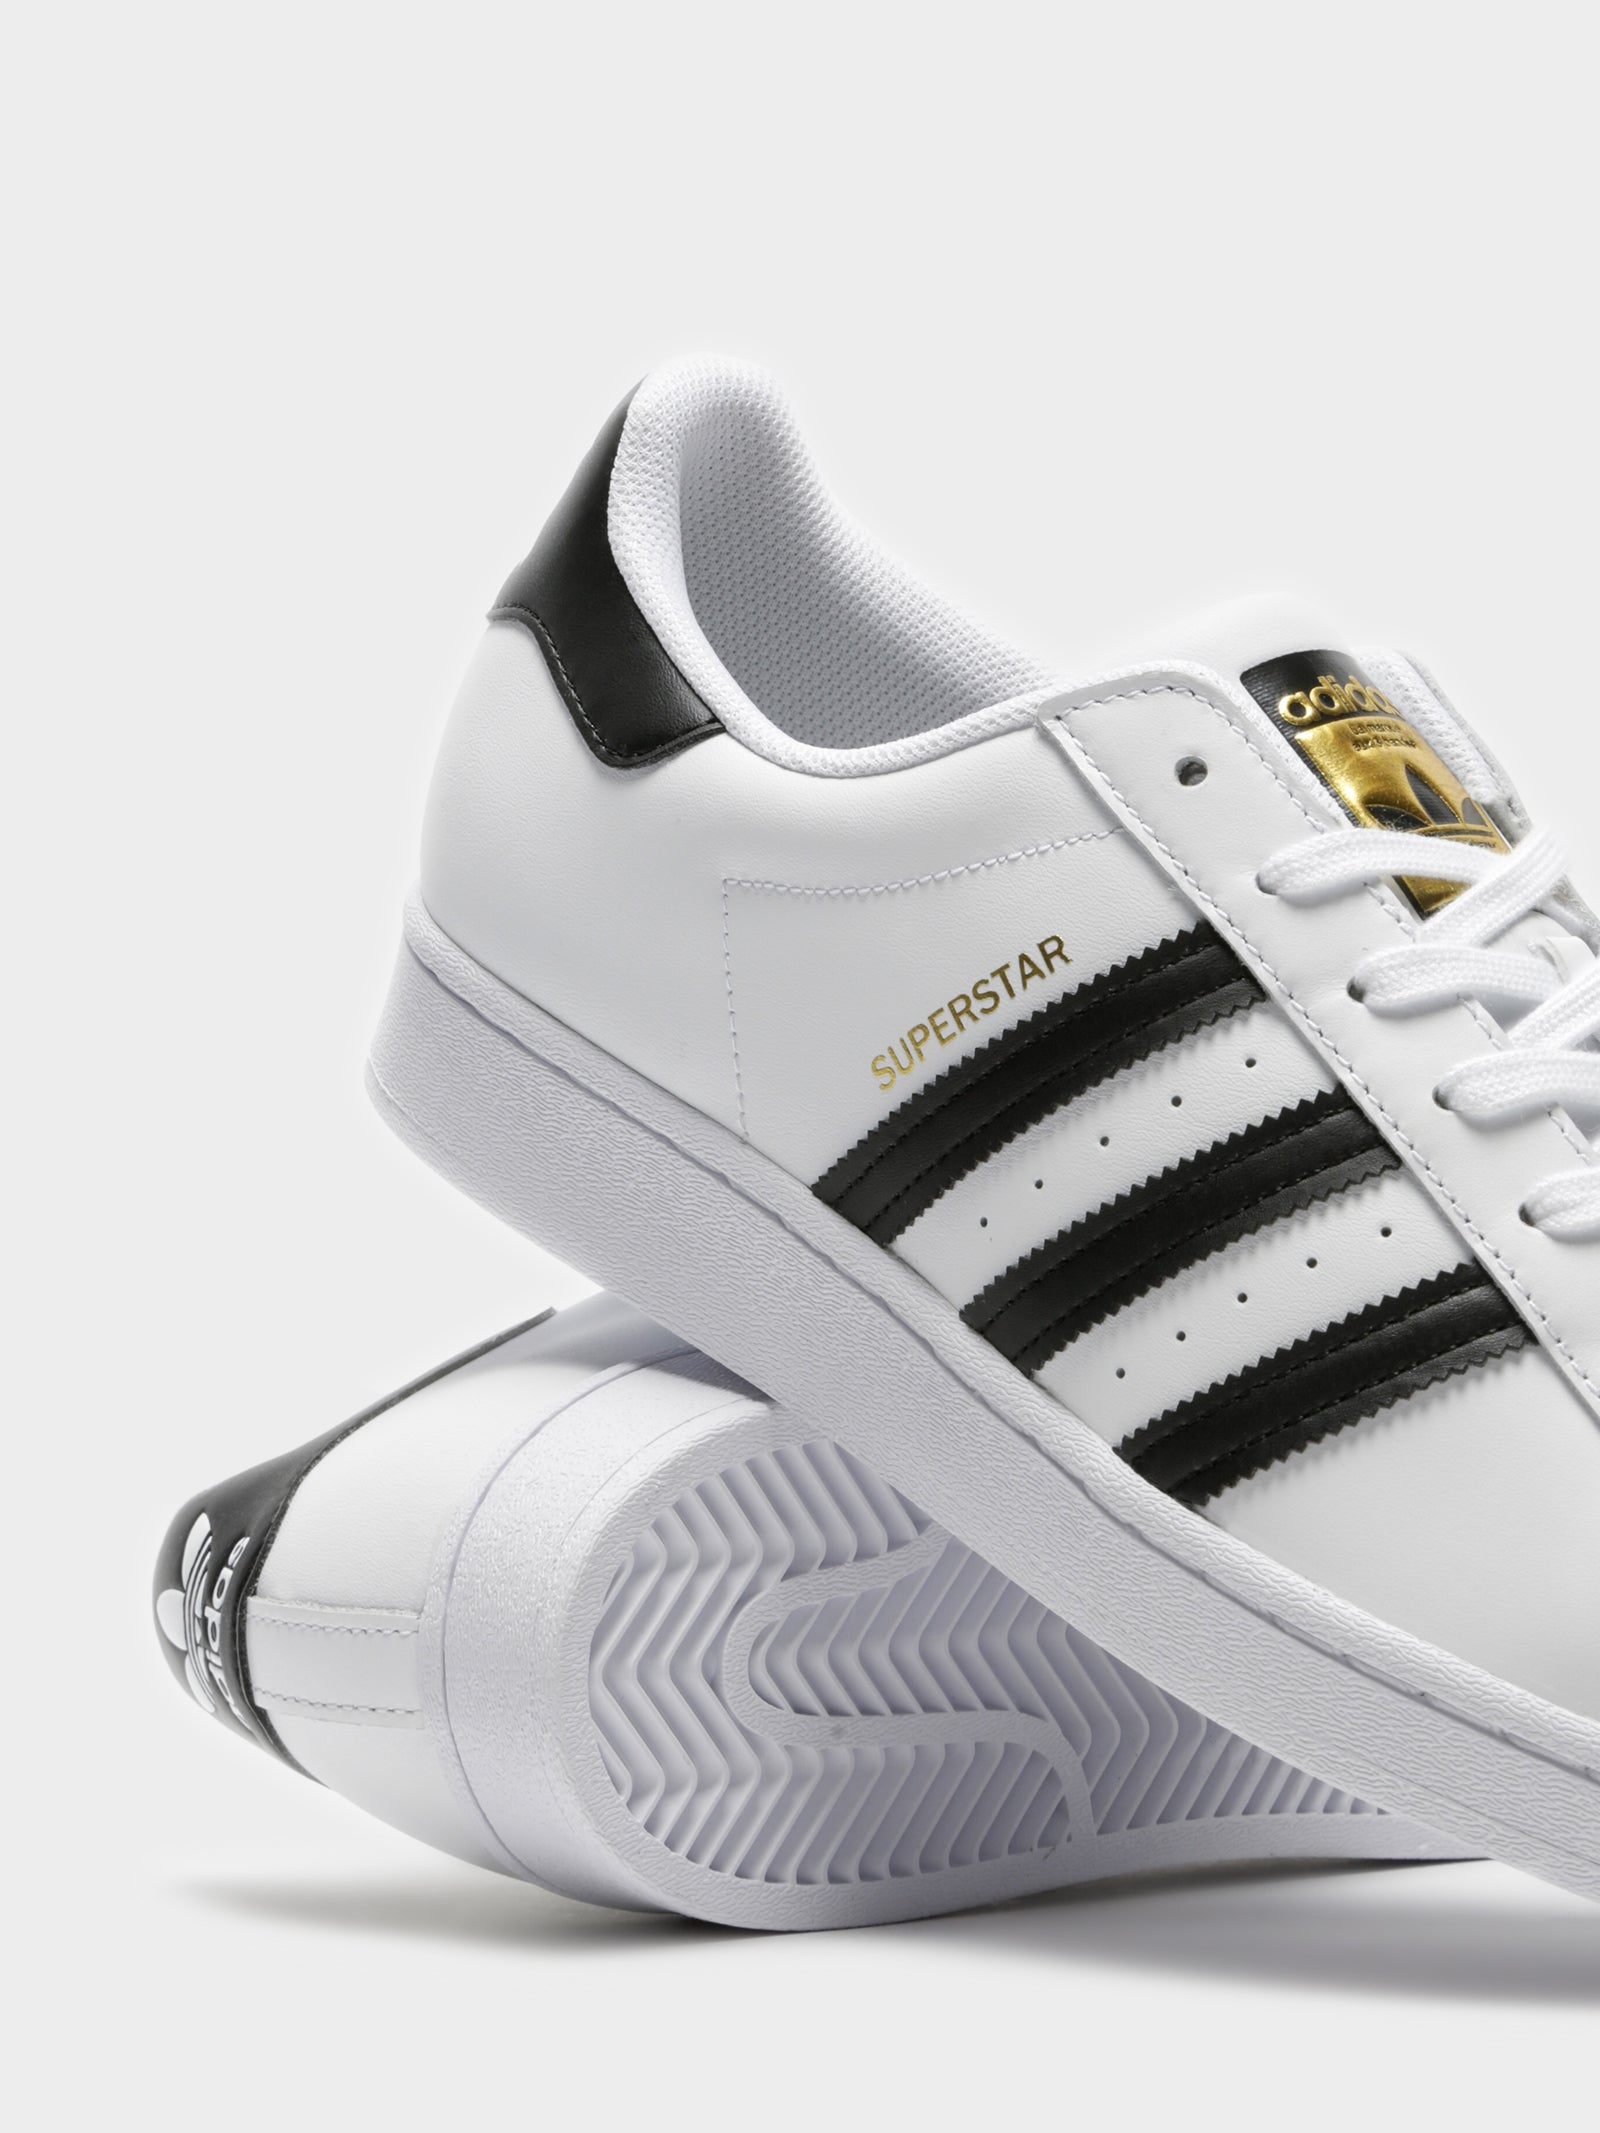 Unisex Superstar 2020 Sneakers in White